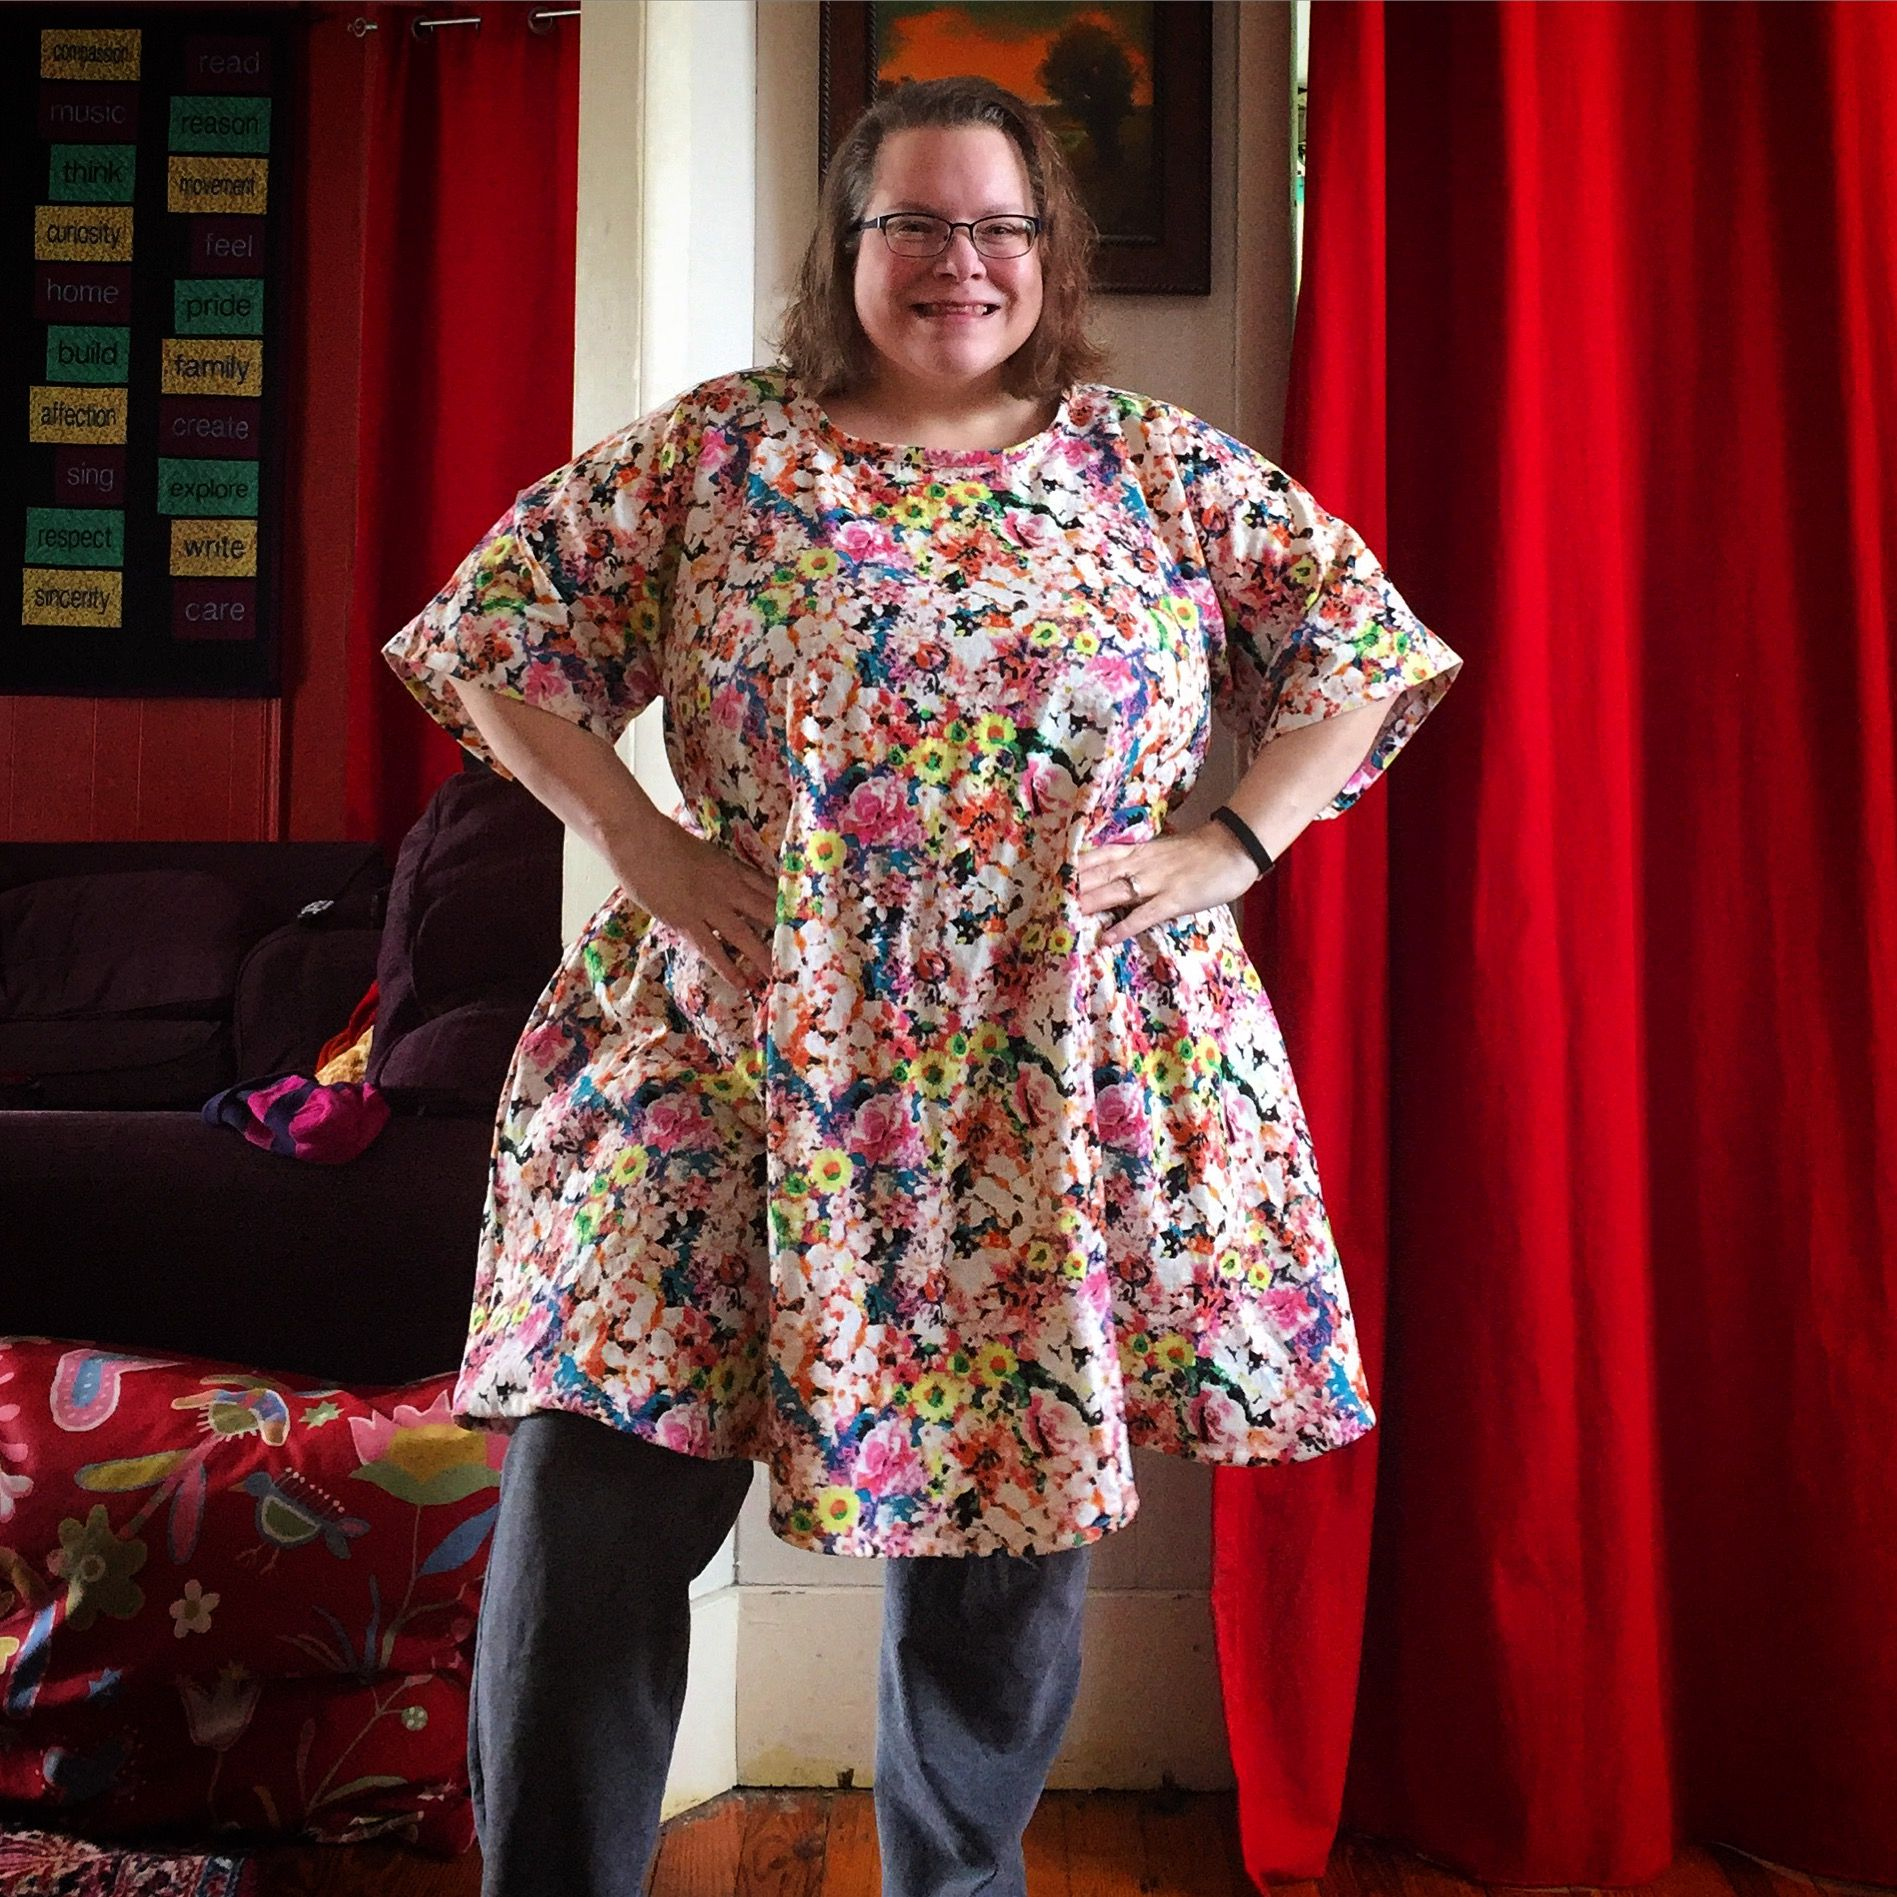 Bloom dress pattern by tina givens its a free pdf download on bloom dress pattern by tina givens its a free pdf download on her website jeuxipadfo Gallery